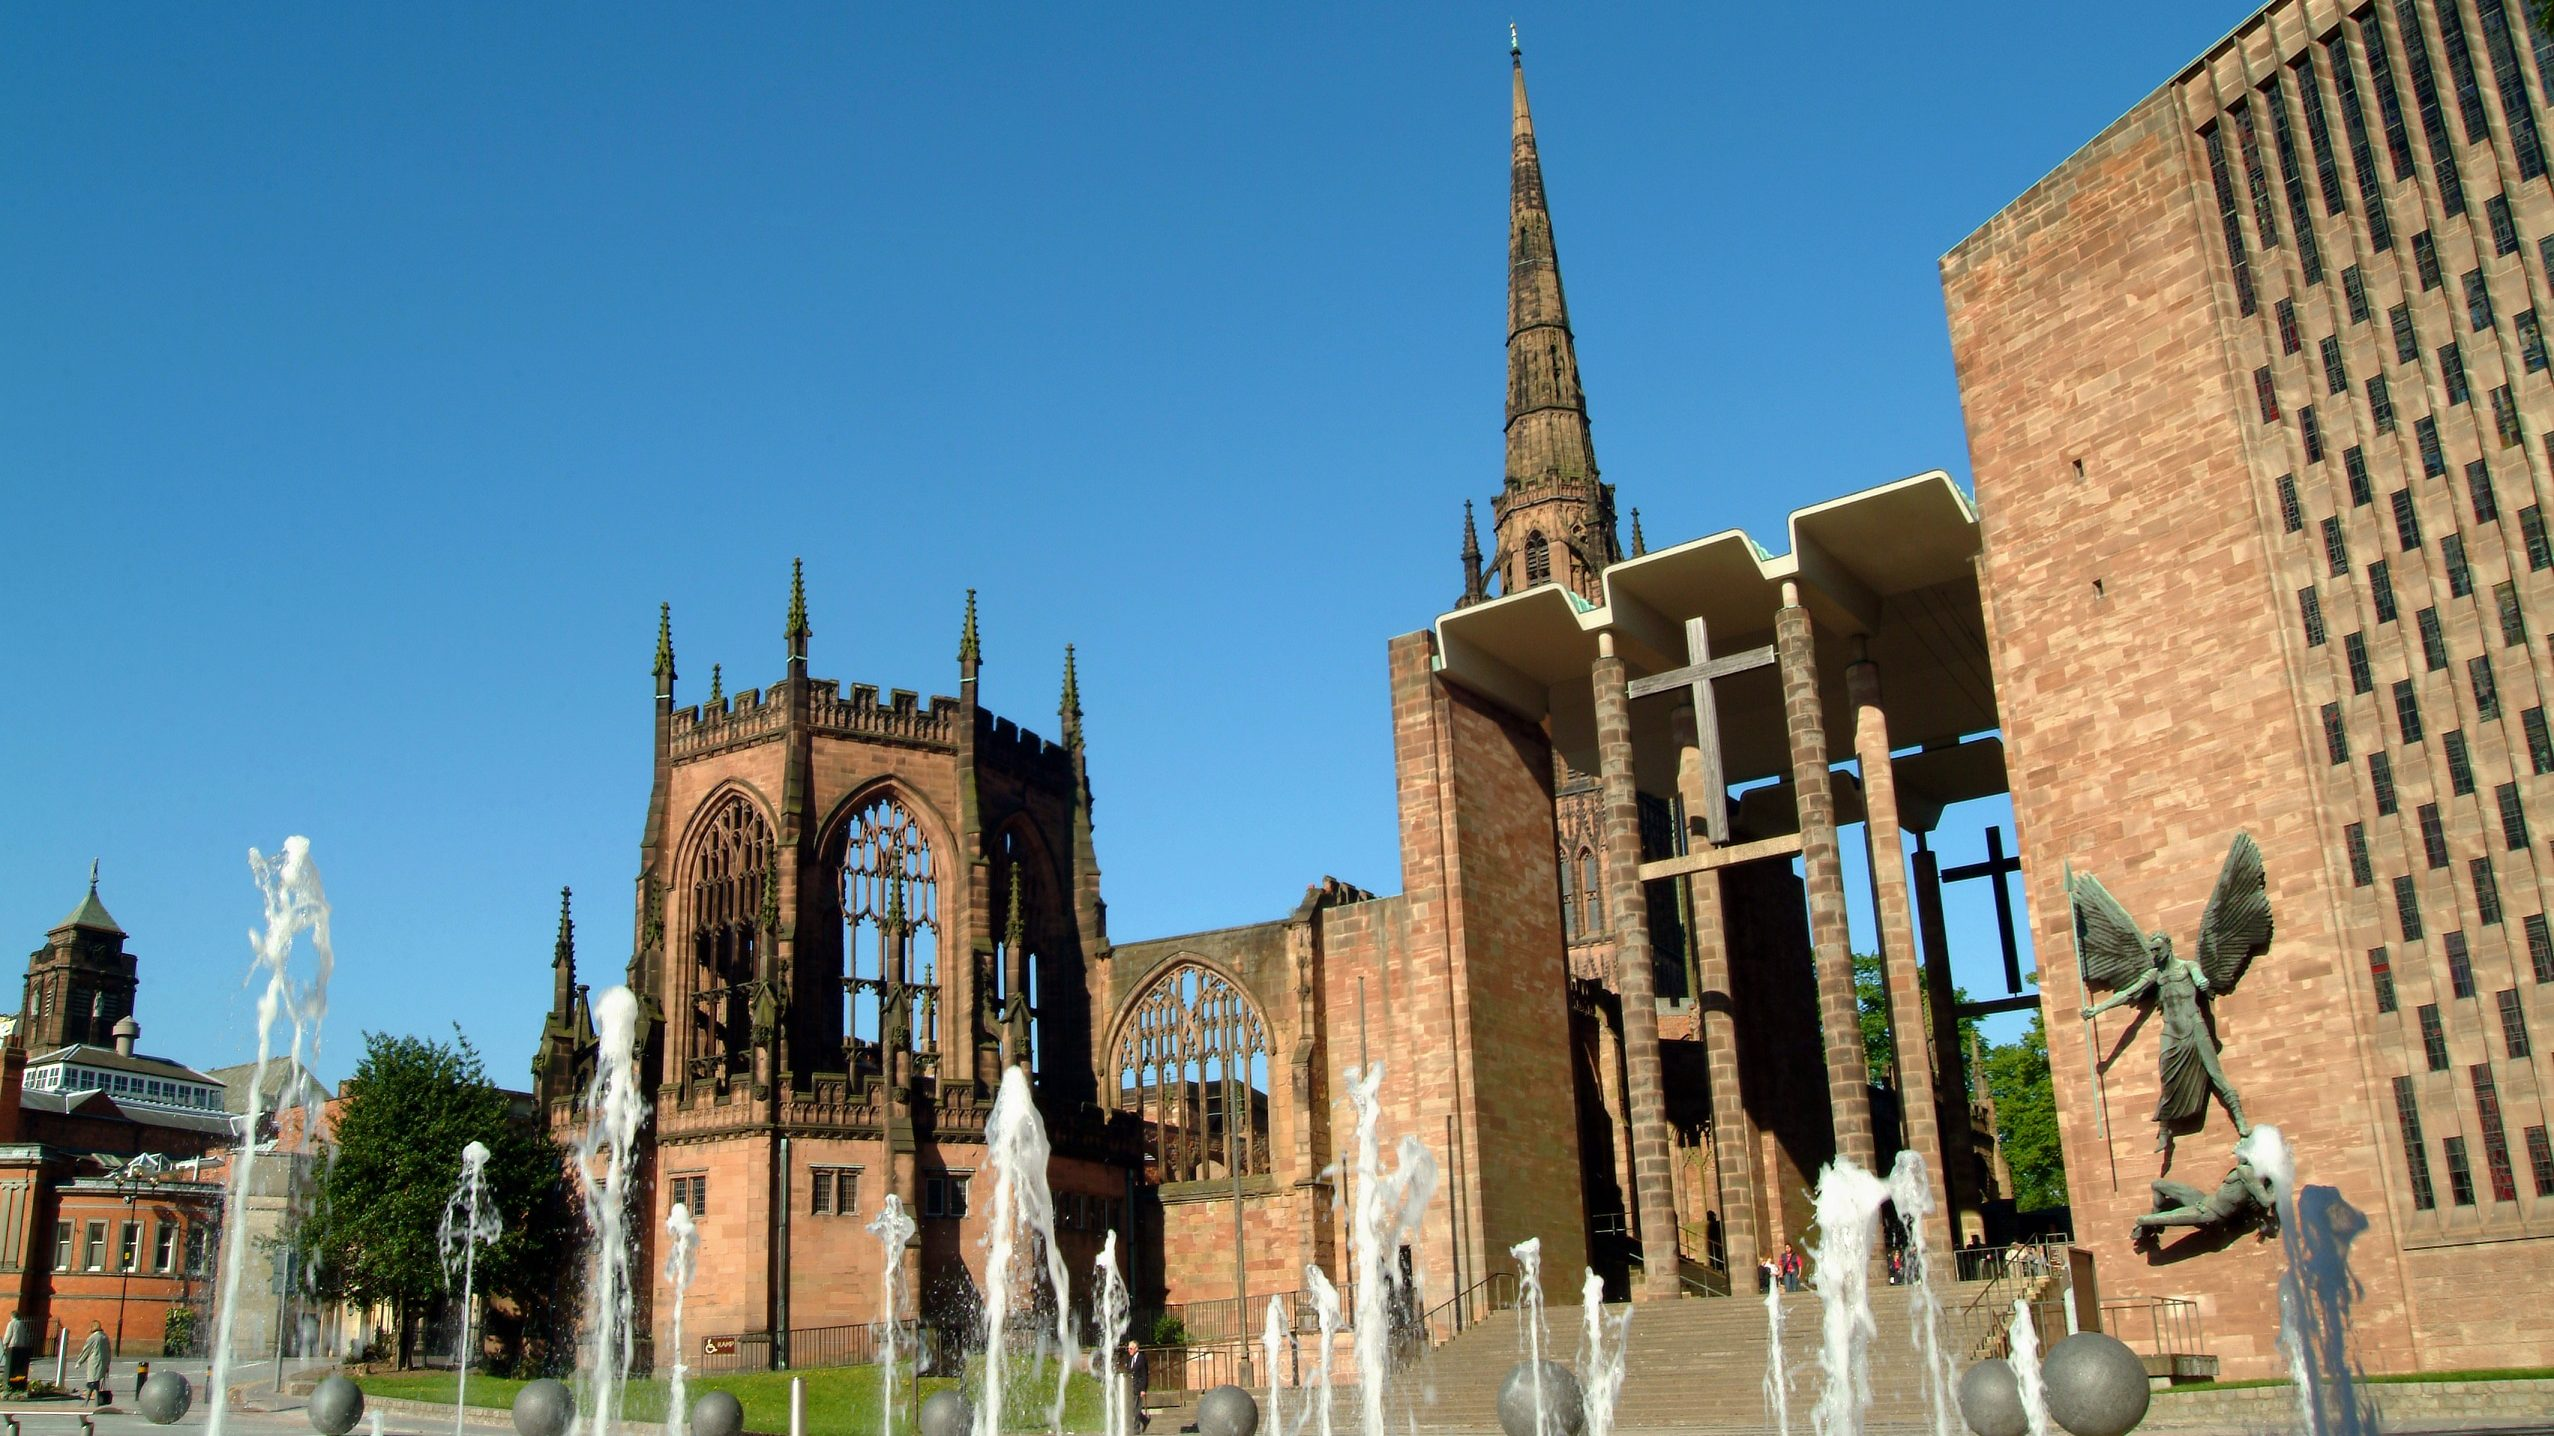 Coventry & Warks amongst locations identified for emerging industries